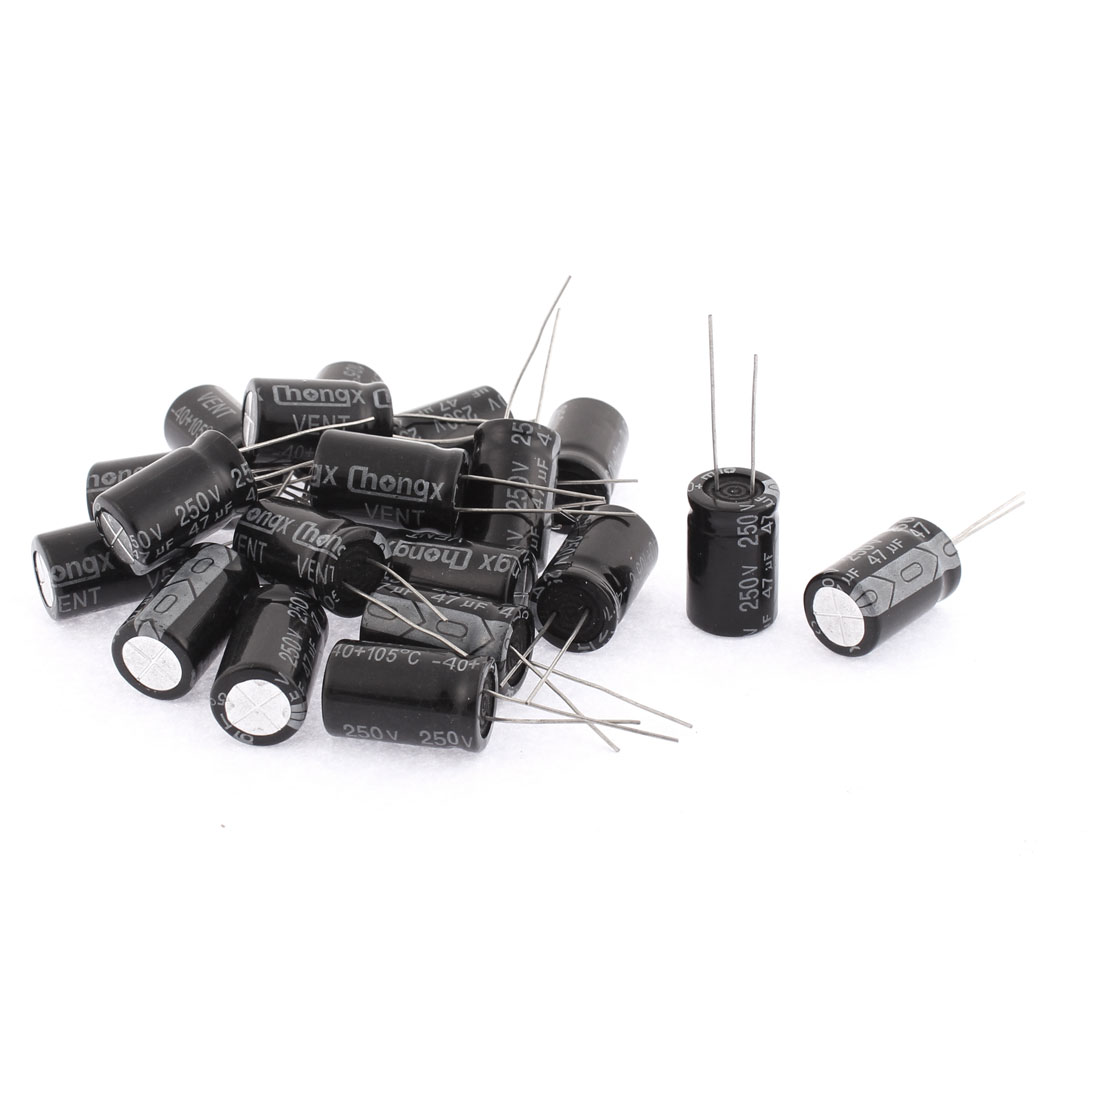 20PCS 47uF 250V Radial Leads Aluminum Electrolytic Capacitors 13 x 21mm